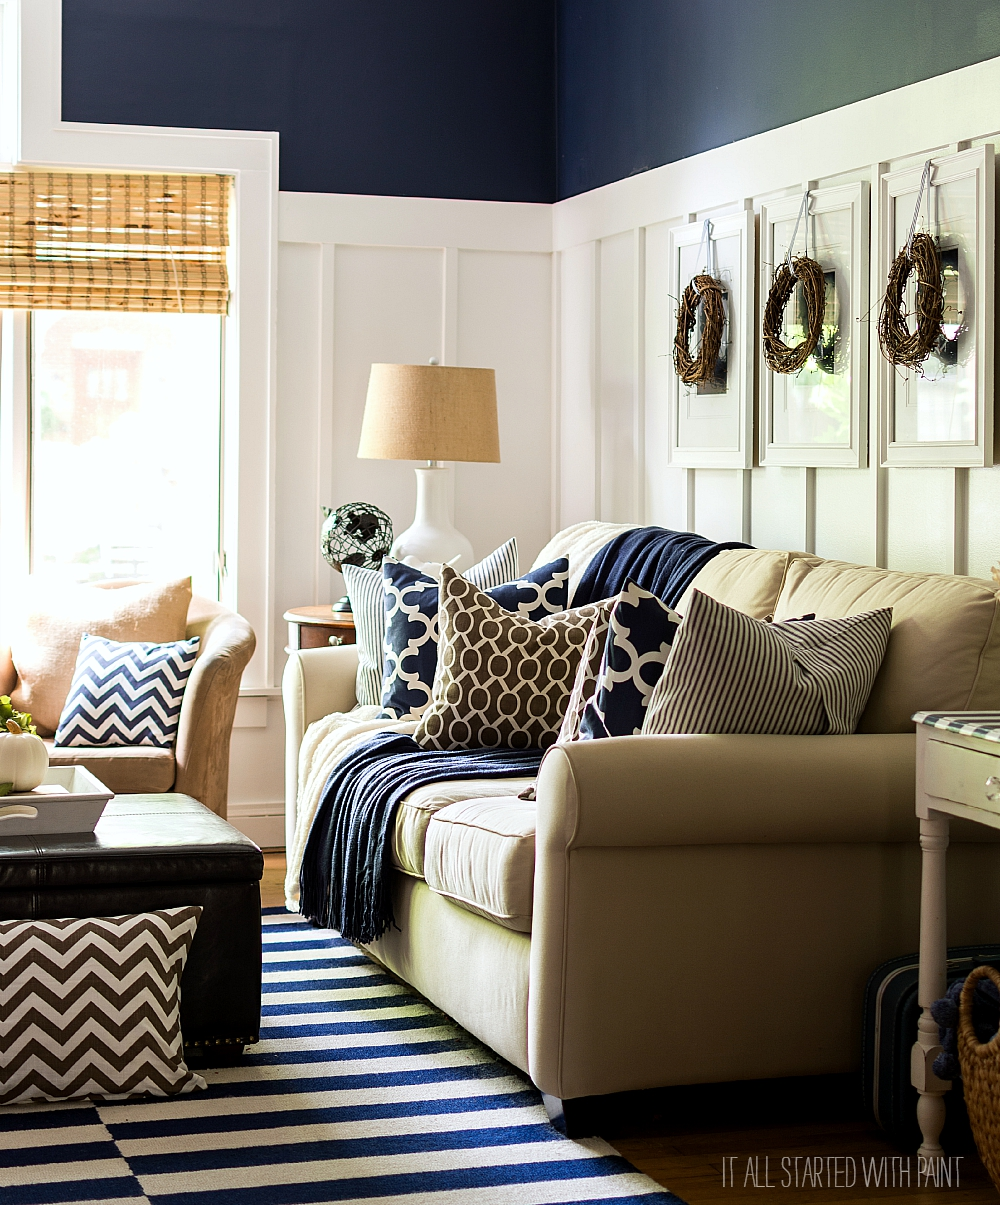 Fall Decorating Ideas Using Brown And Navy Neutrals: Board And Batten Living  Room Decorated For